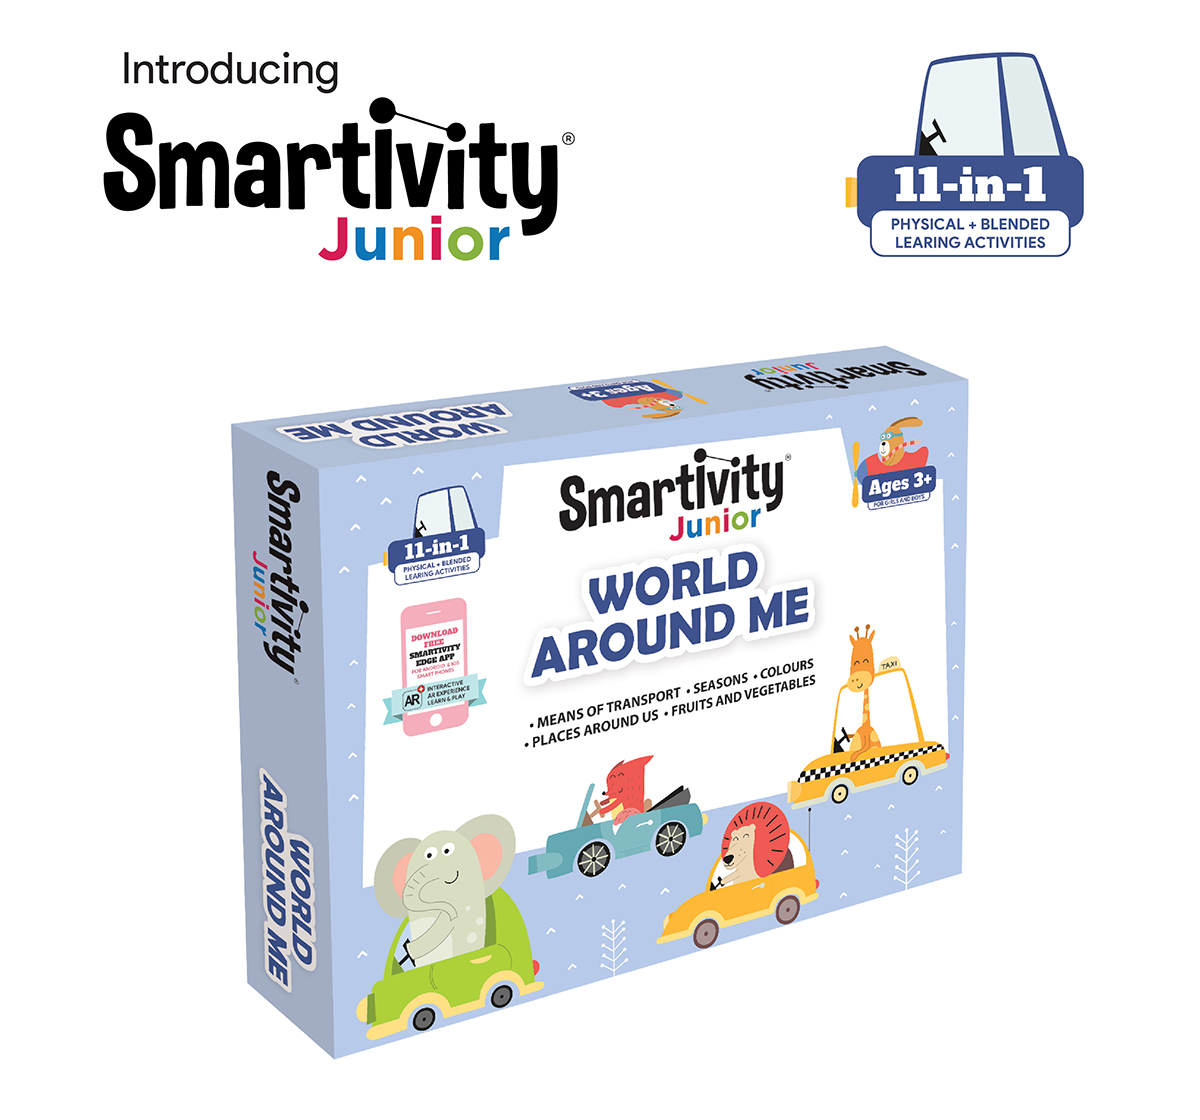 Smartivity   Smartivity Junior World Around Me Pre-School STEAM Learning Educational Toy Art & Craft Play 11 in 1 Activity Kit